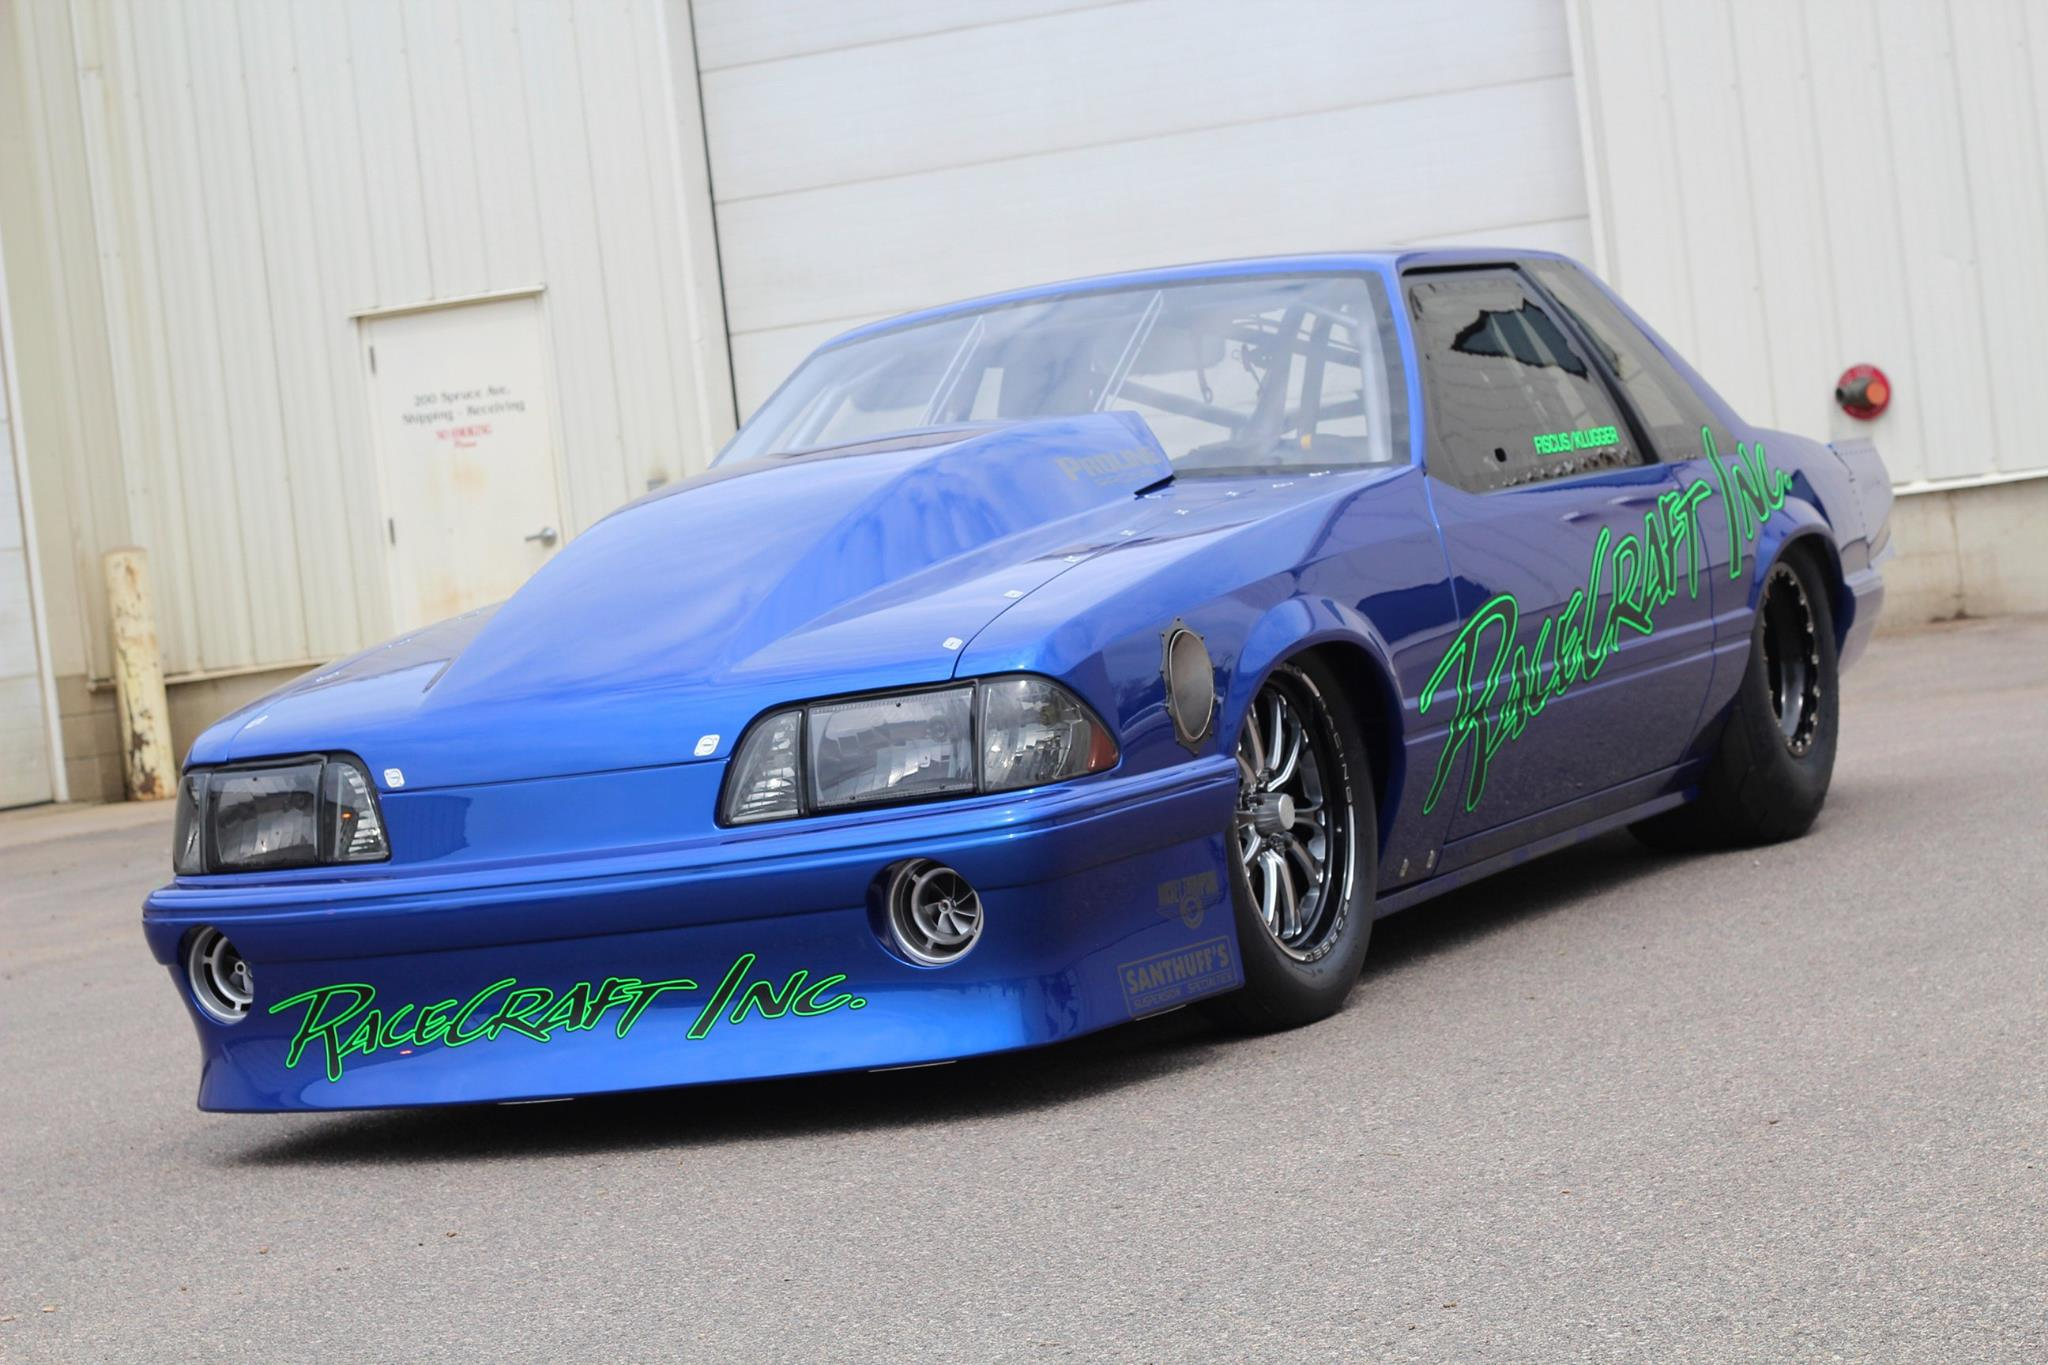 Di First Look Fiscus Klugger Racing Drag Radial Mustang Drag